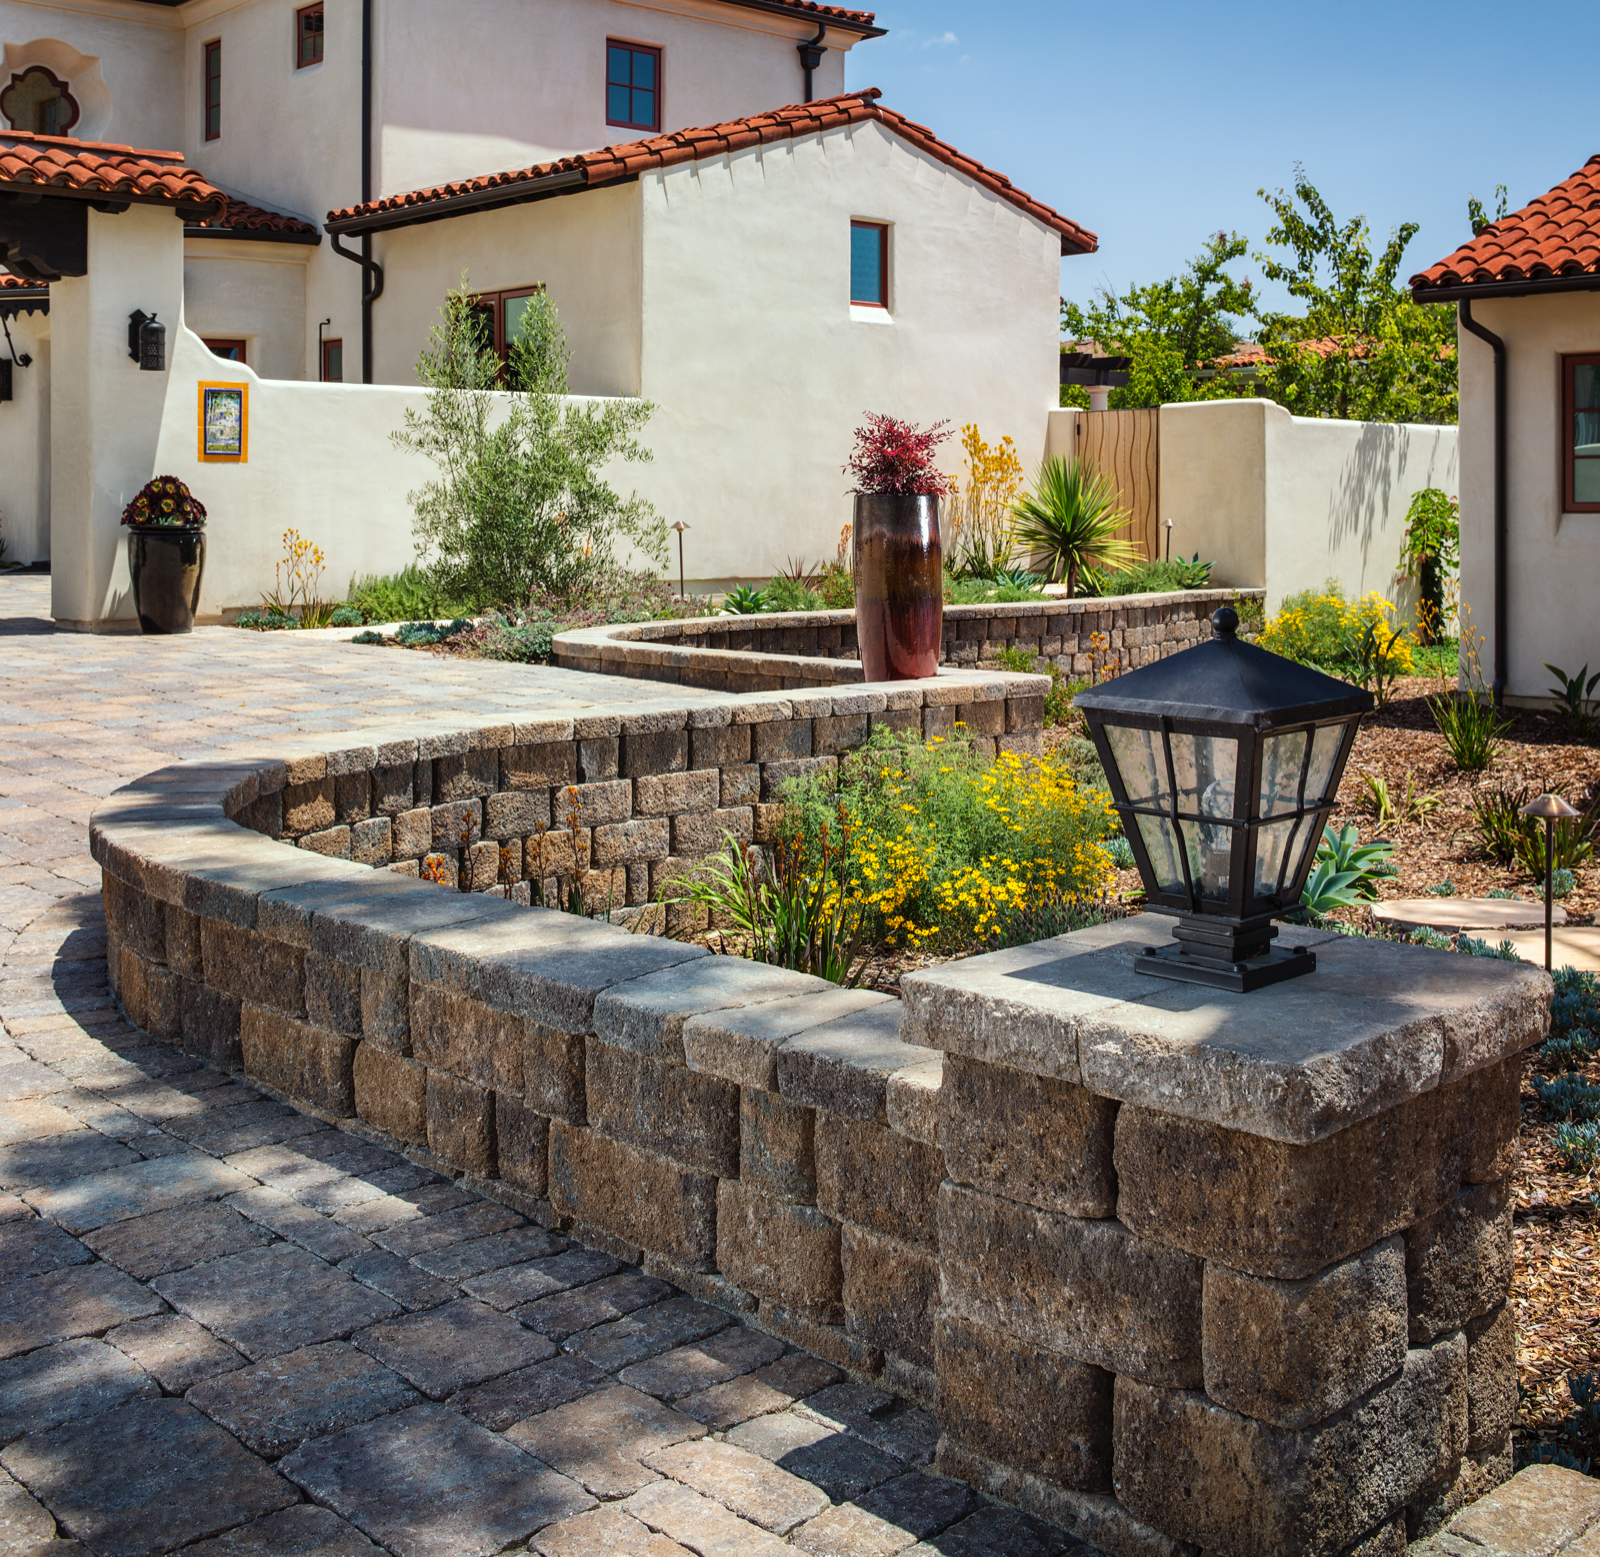 belgard castle manor wall paver - Transitional Castle 2016